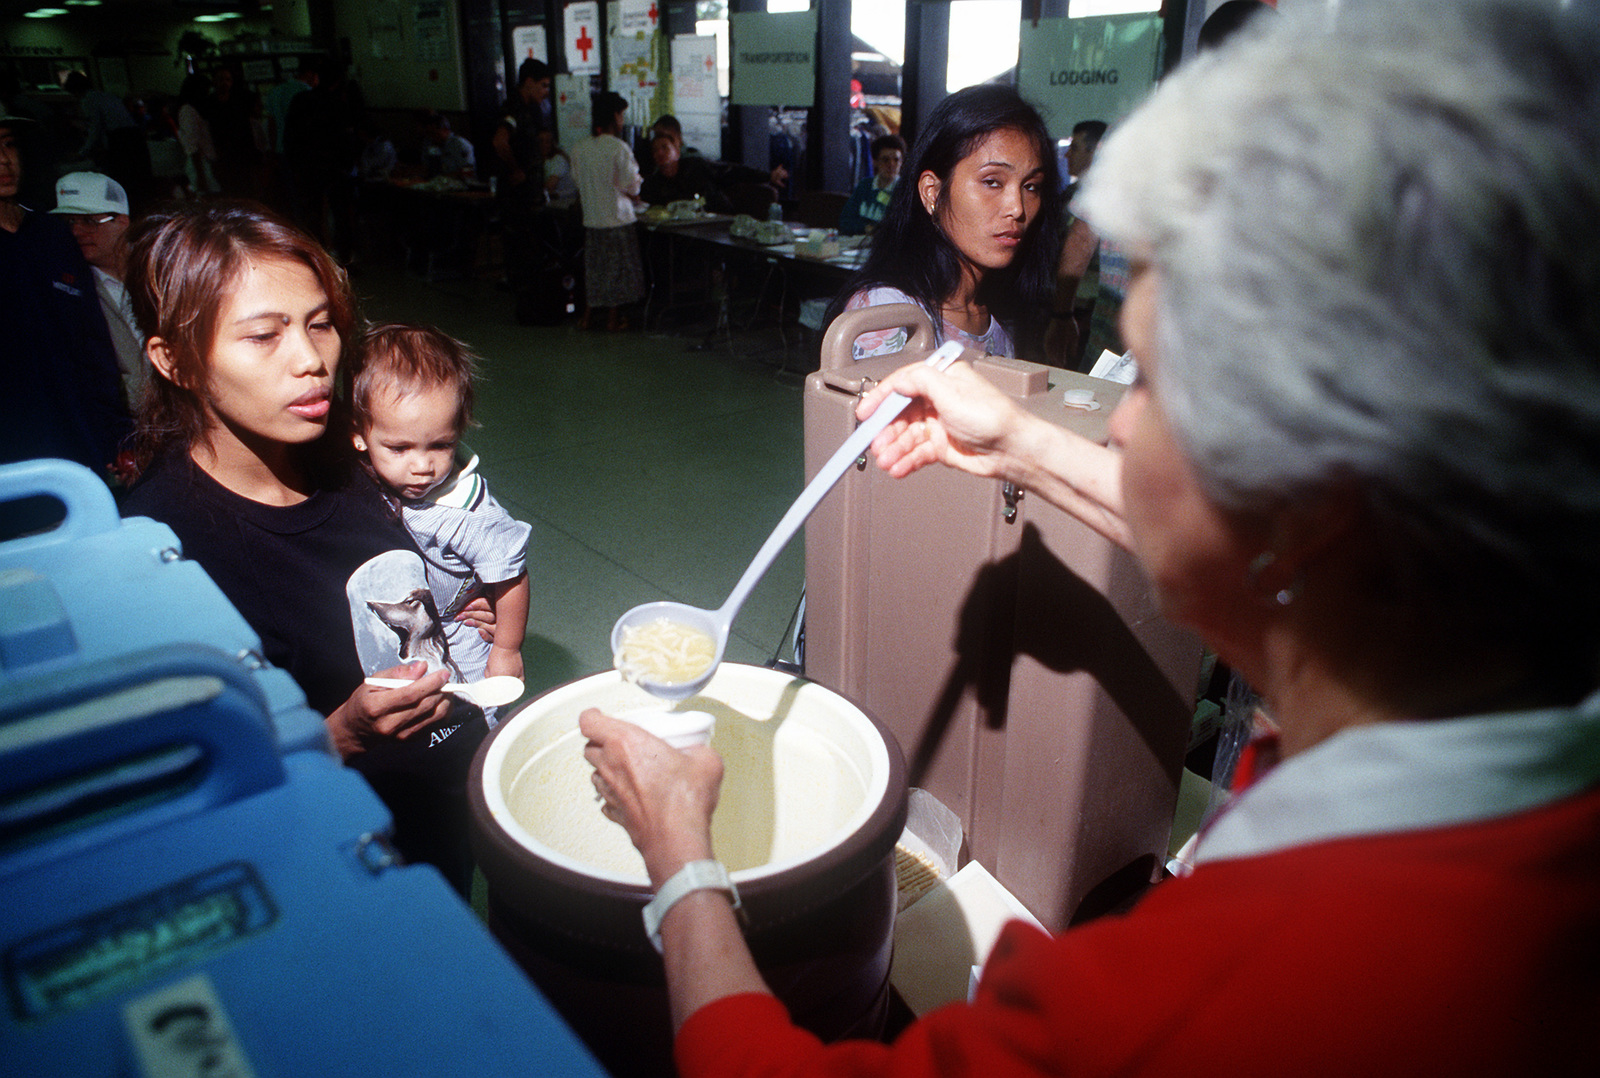 Erlinda Gale, wife of an airman at Clark Air Base, Philippines, receives a bowl of soup from a volunteer at the Military Airlift Command terminal during Operation Fiery Vigil. McChord is a stopover for hundreds of U.S. Air Force and Navy personnel, civilian employees and their dependents being evacuated from the Philippines after fallen ash from the erruption of Mount Pinatubo collapsed buildings and disrupted operations on military bases.